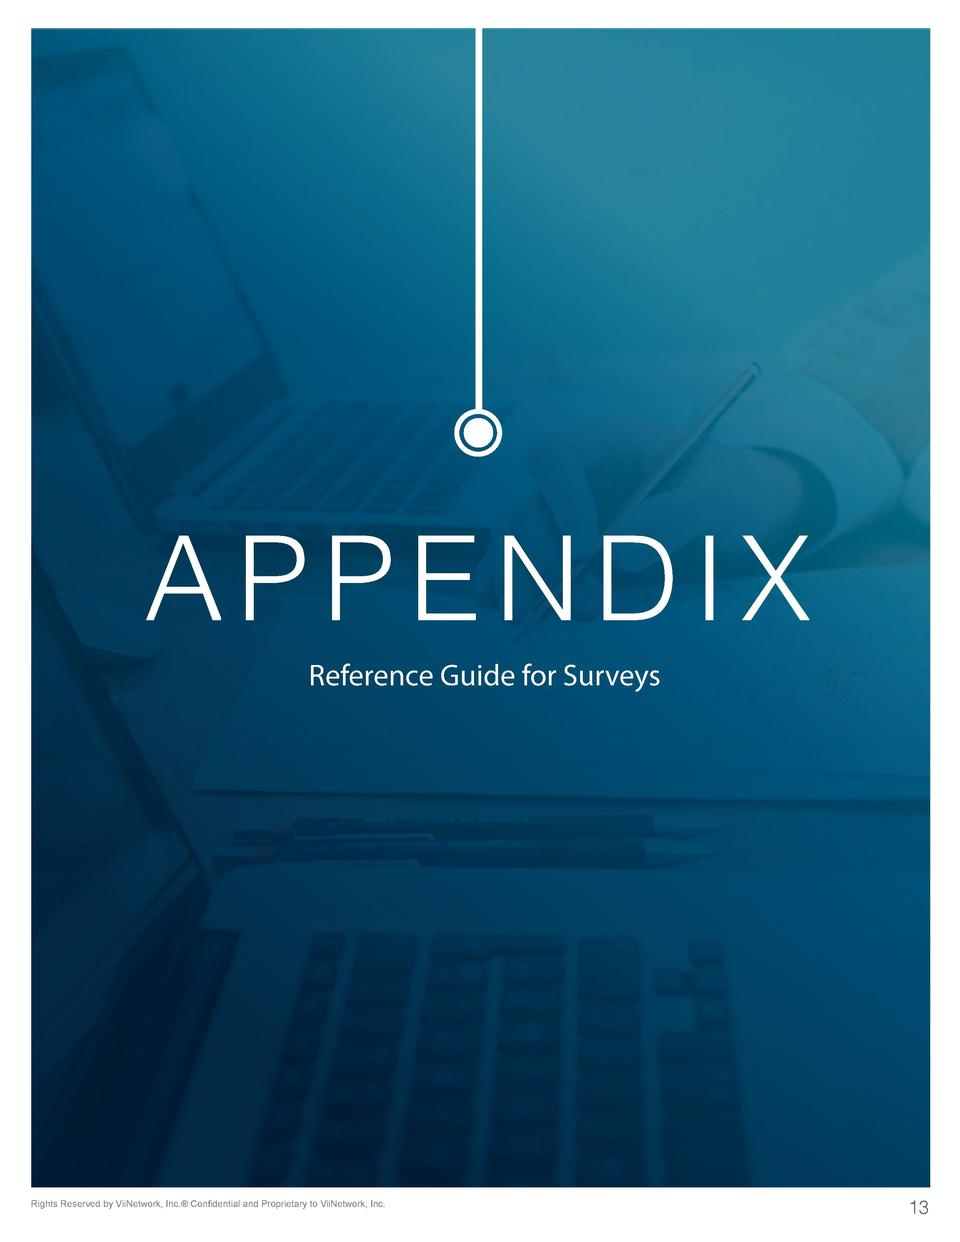 APPENDIX Reference Guide for Surveys  Rights Reserved by ViiNetwork, Inc.   Confidential and Proprietary to ViiNetwork, In...